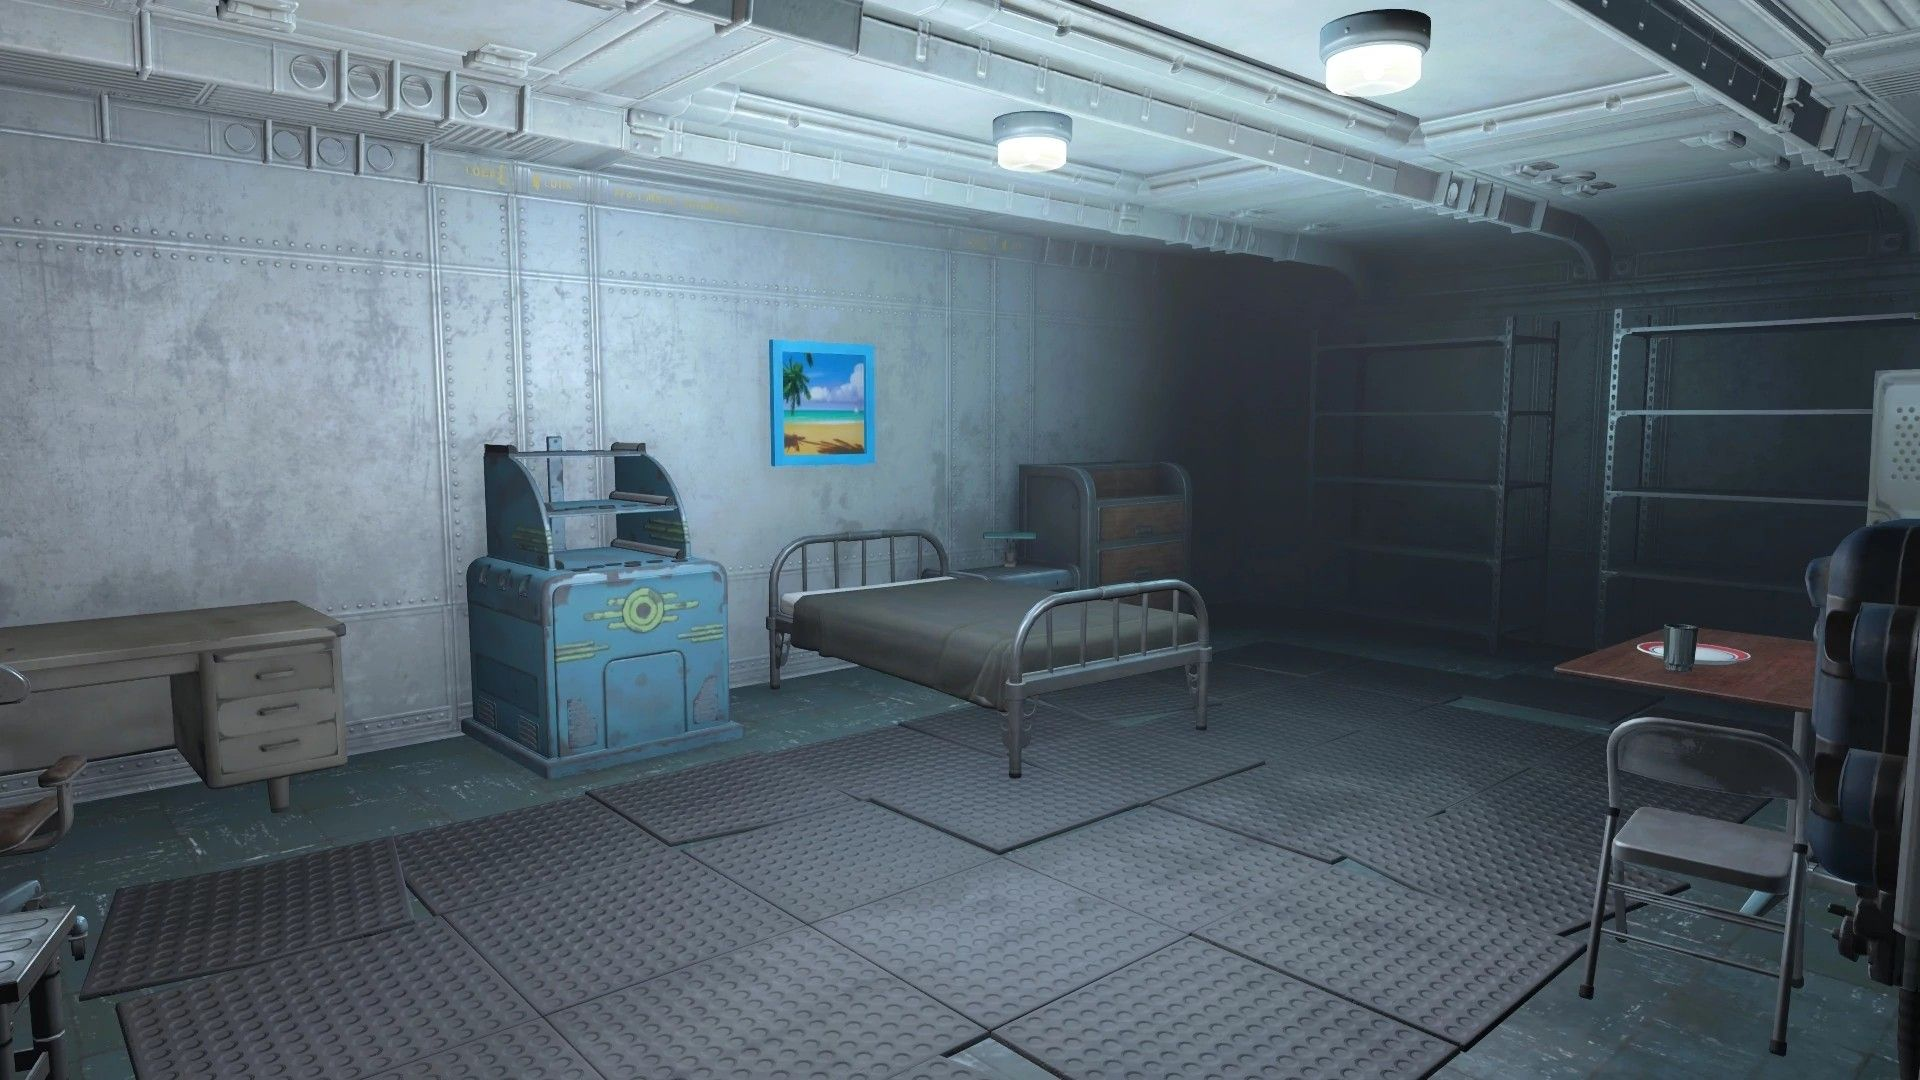 Fallout Vault Interior With Images Fallout Concept Art Interior Concept Art